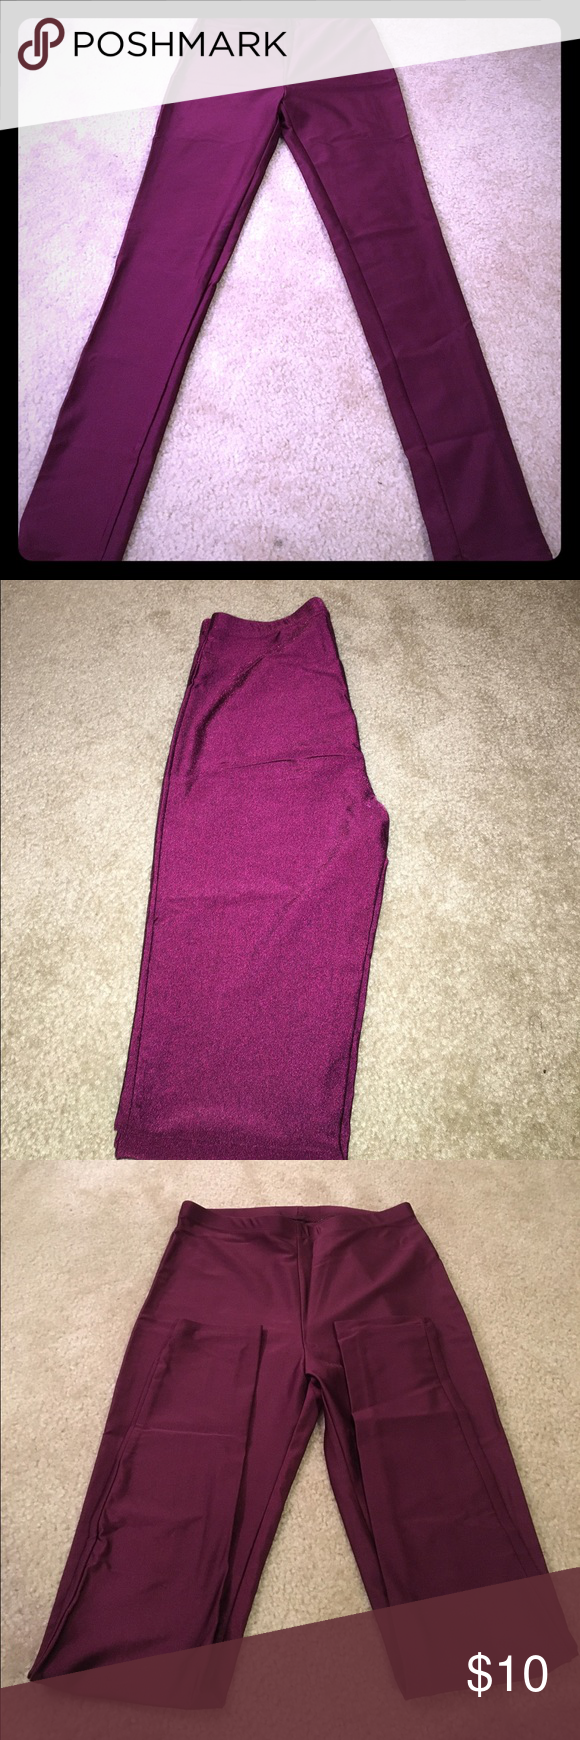 Leggings 82% Nylon 18% Polyester. Maroon/burgundy. Very comfortable & they have a sheen to them. Forever 21 Pants Leggings